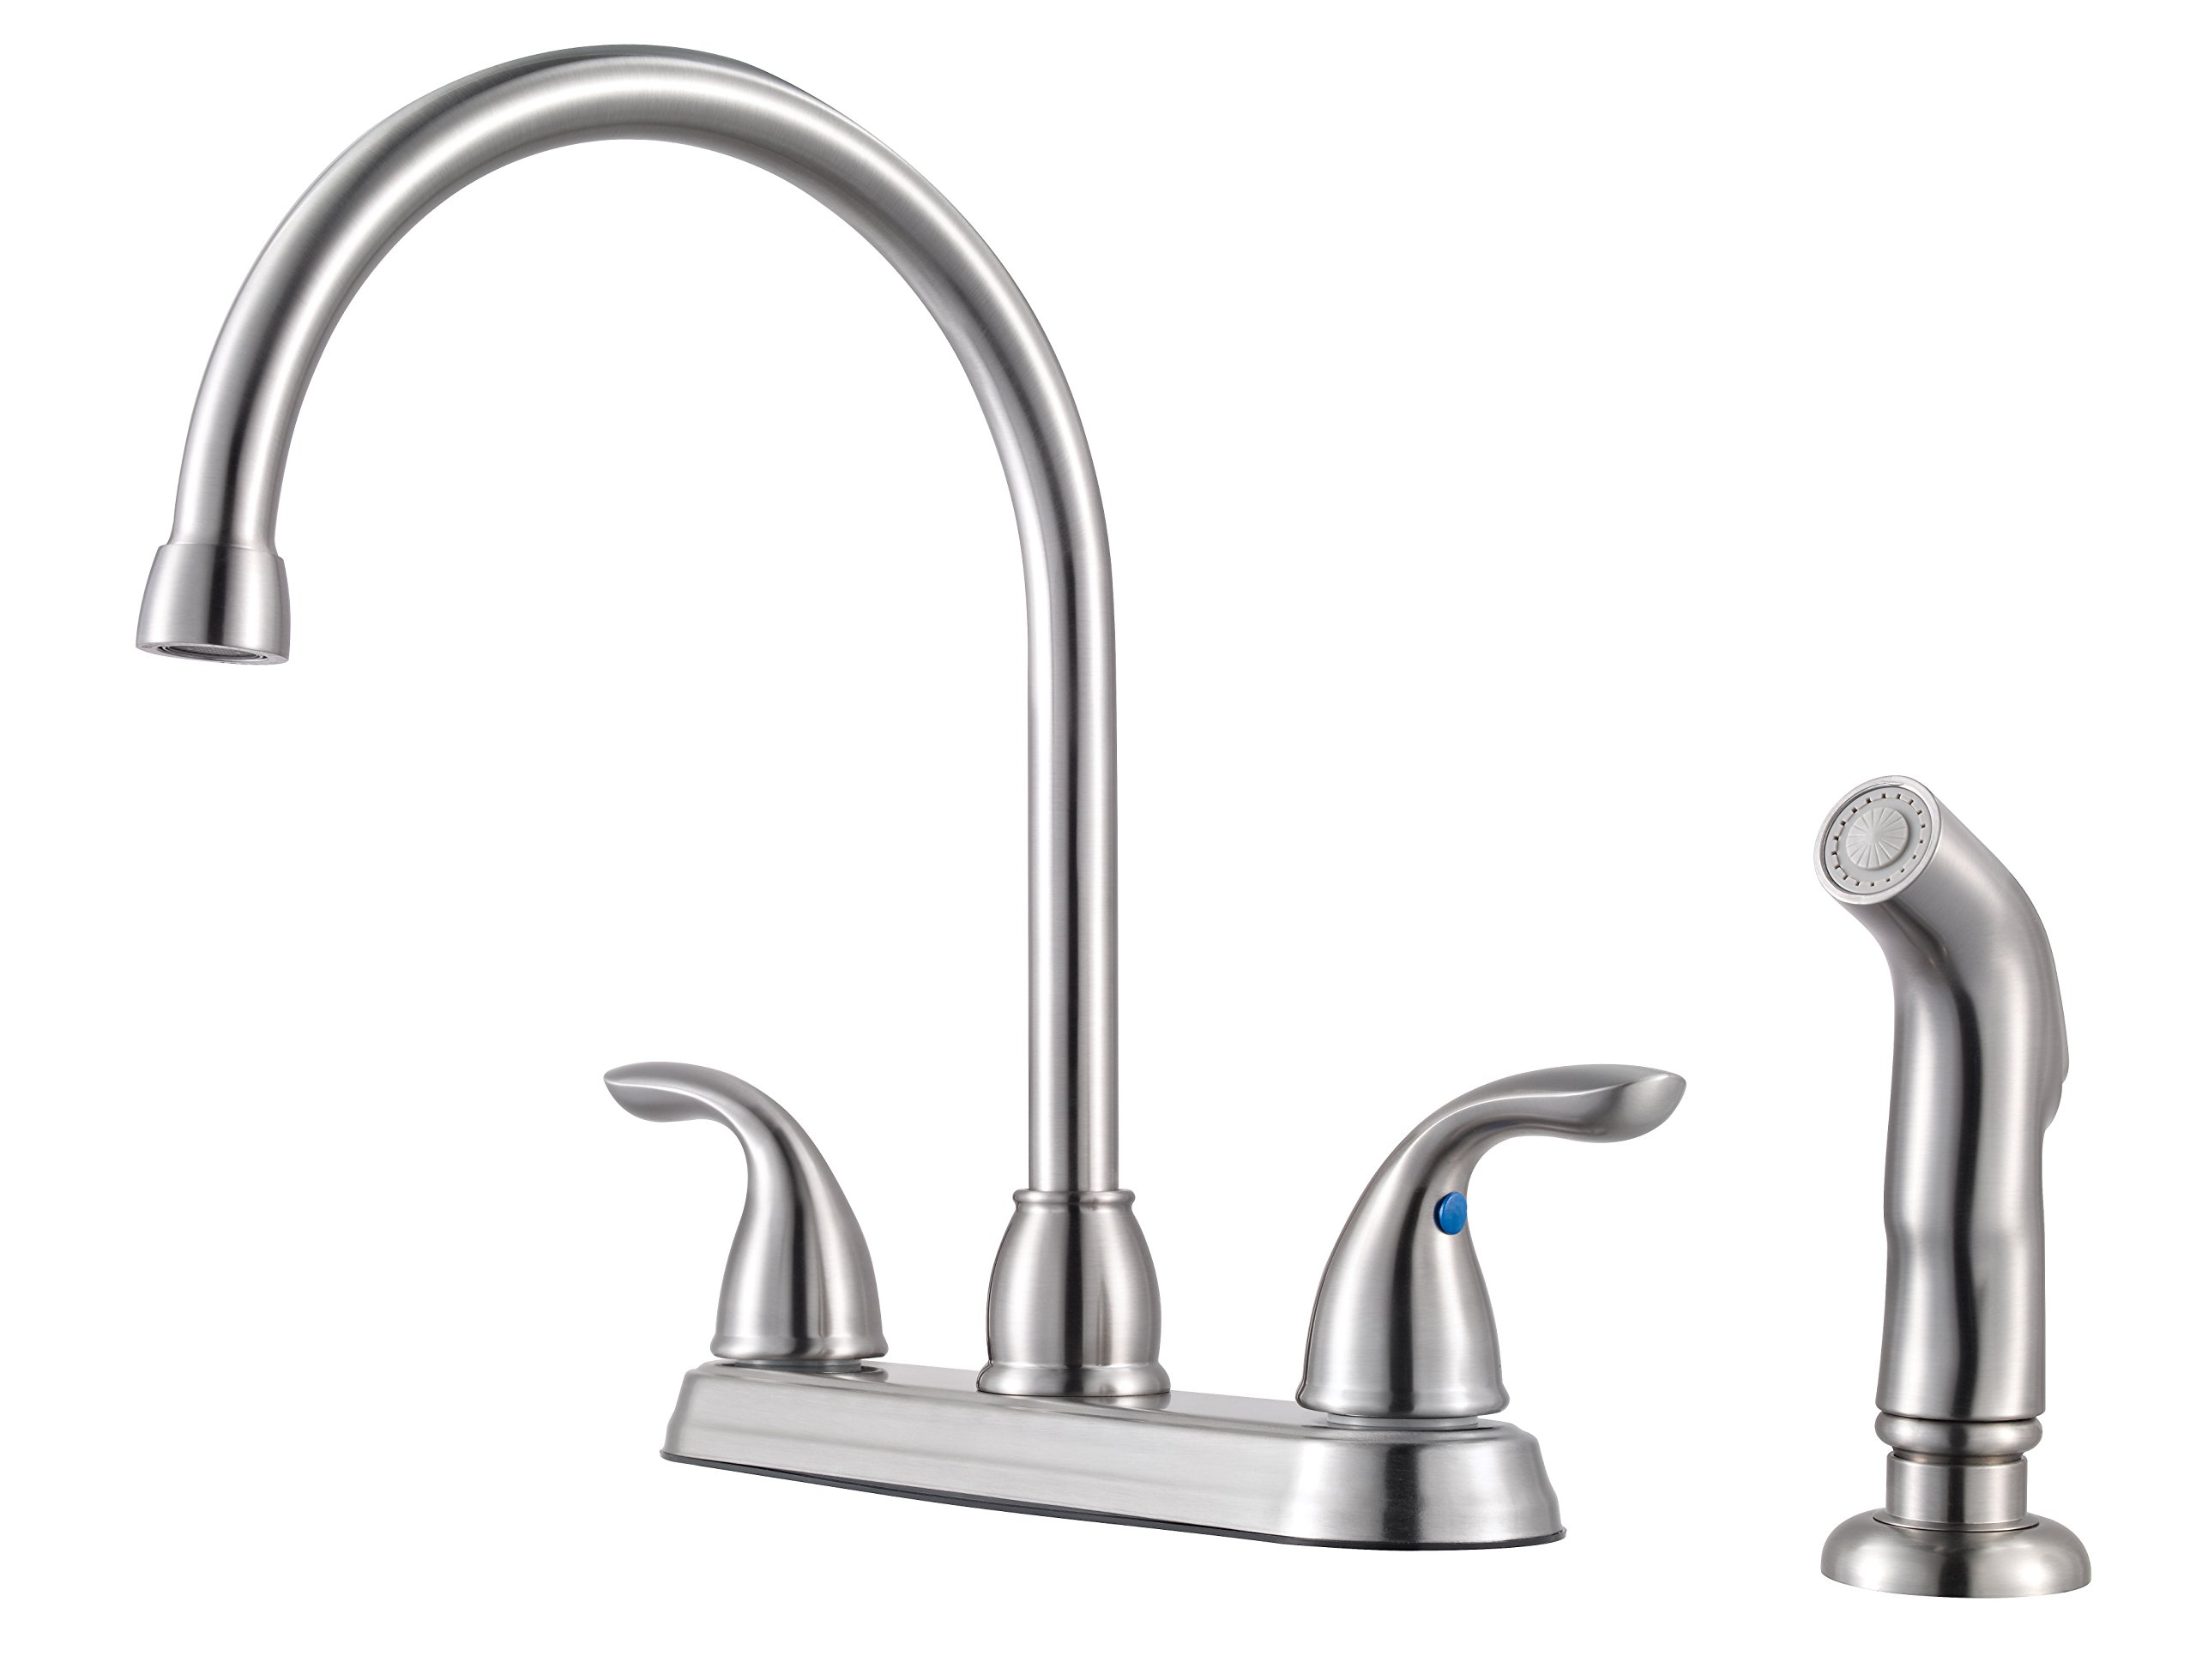 Pfister G136500S Series 2-Handle Kitchen Faucet with with Side Spray, 1.75 GALLONS PER MINUTE, Stainless Steel by Pfister